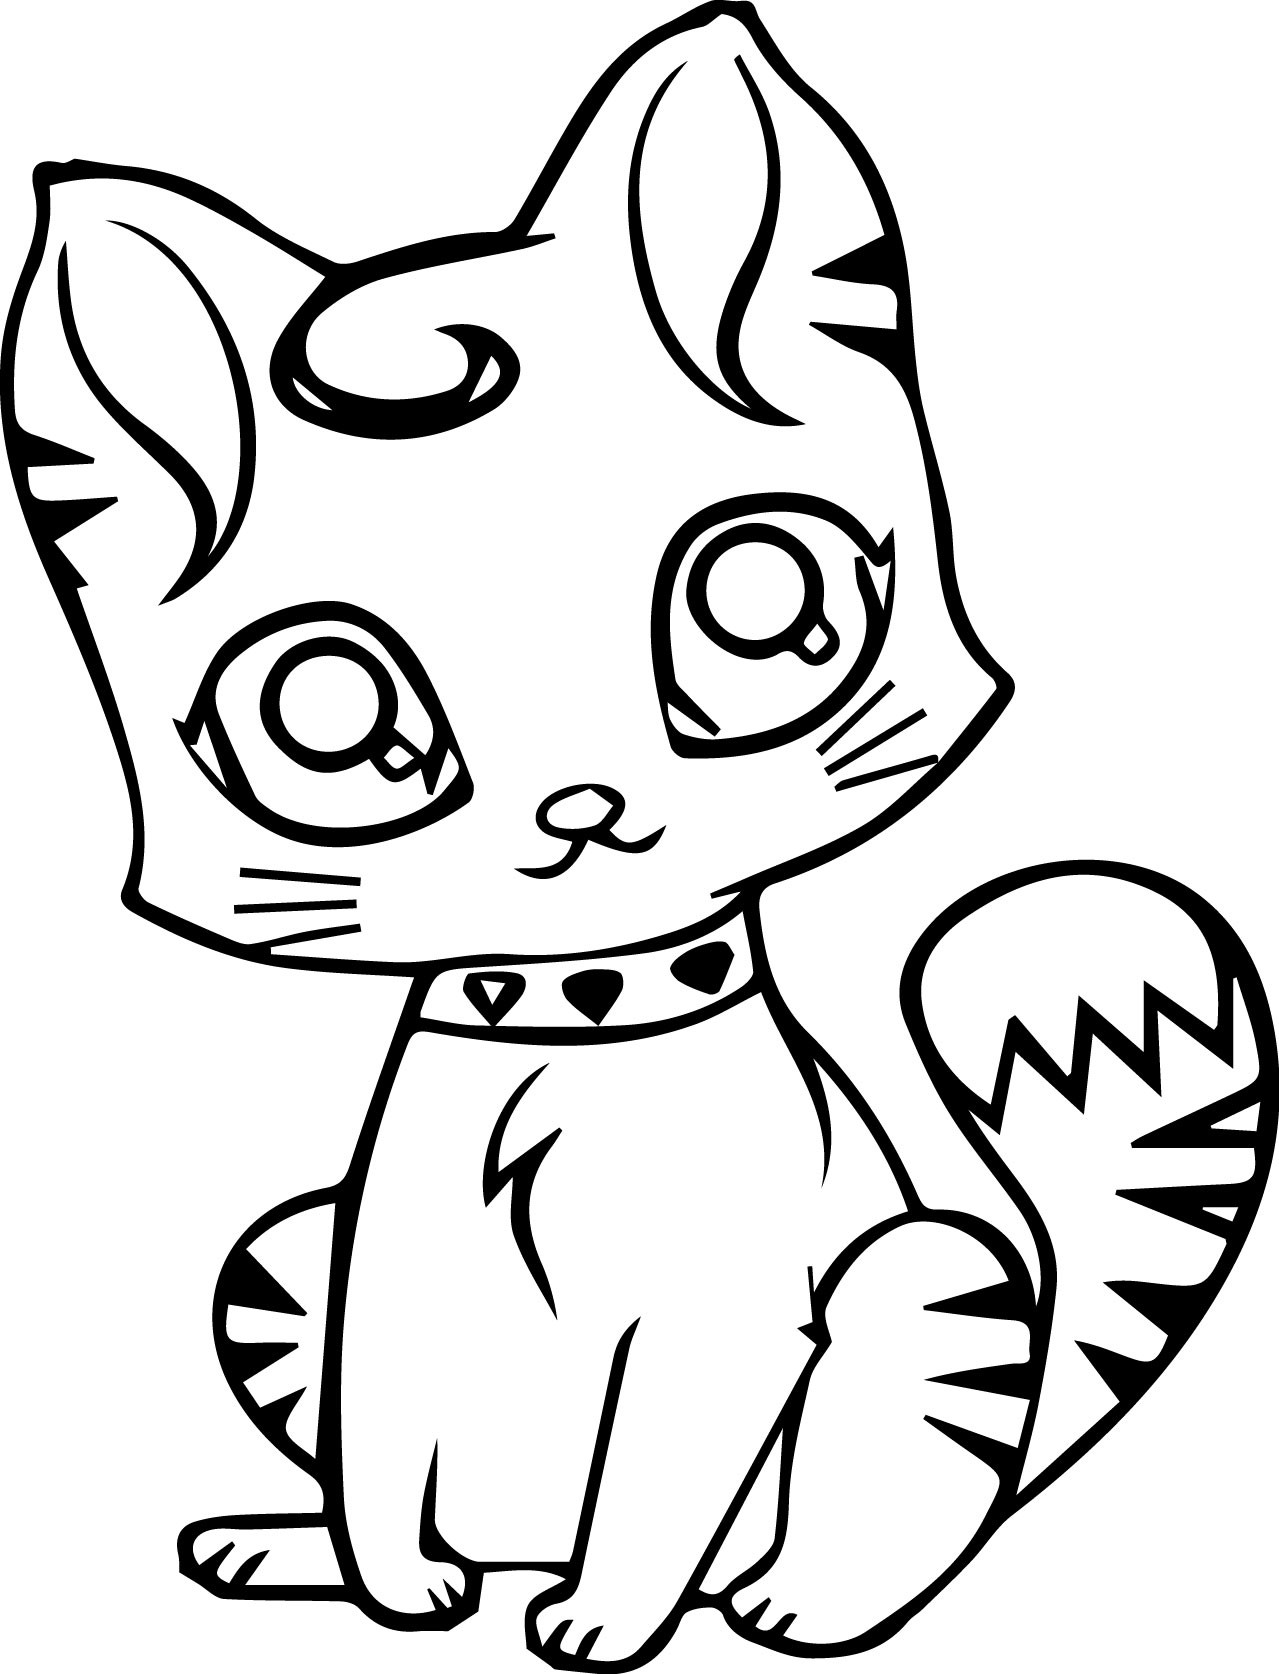 1279x1674 Cute Cat Coloring Pages Wallpapers